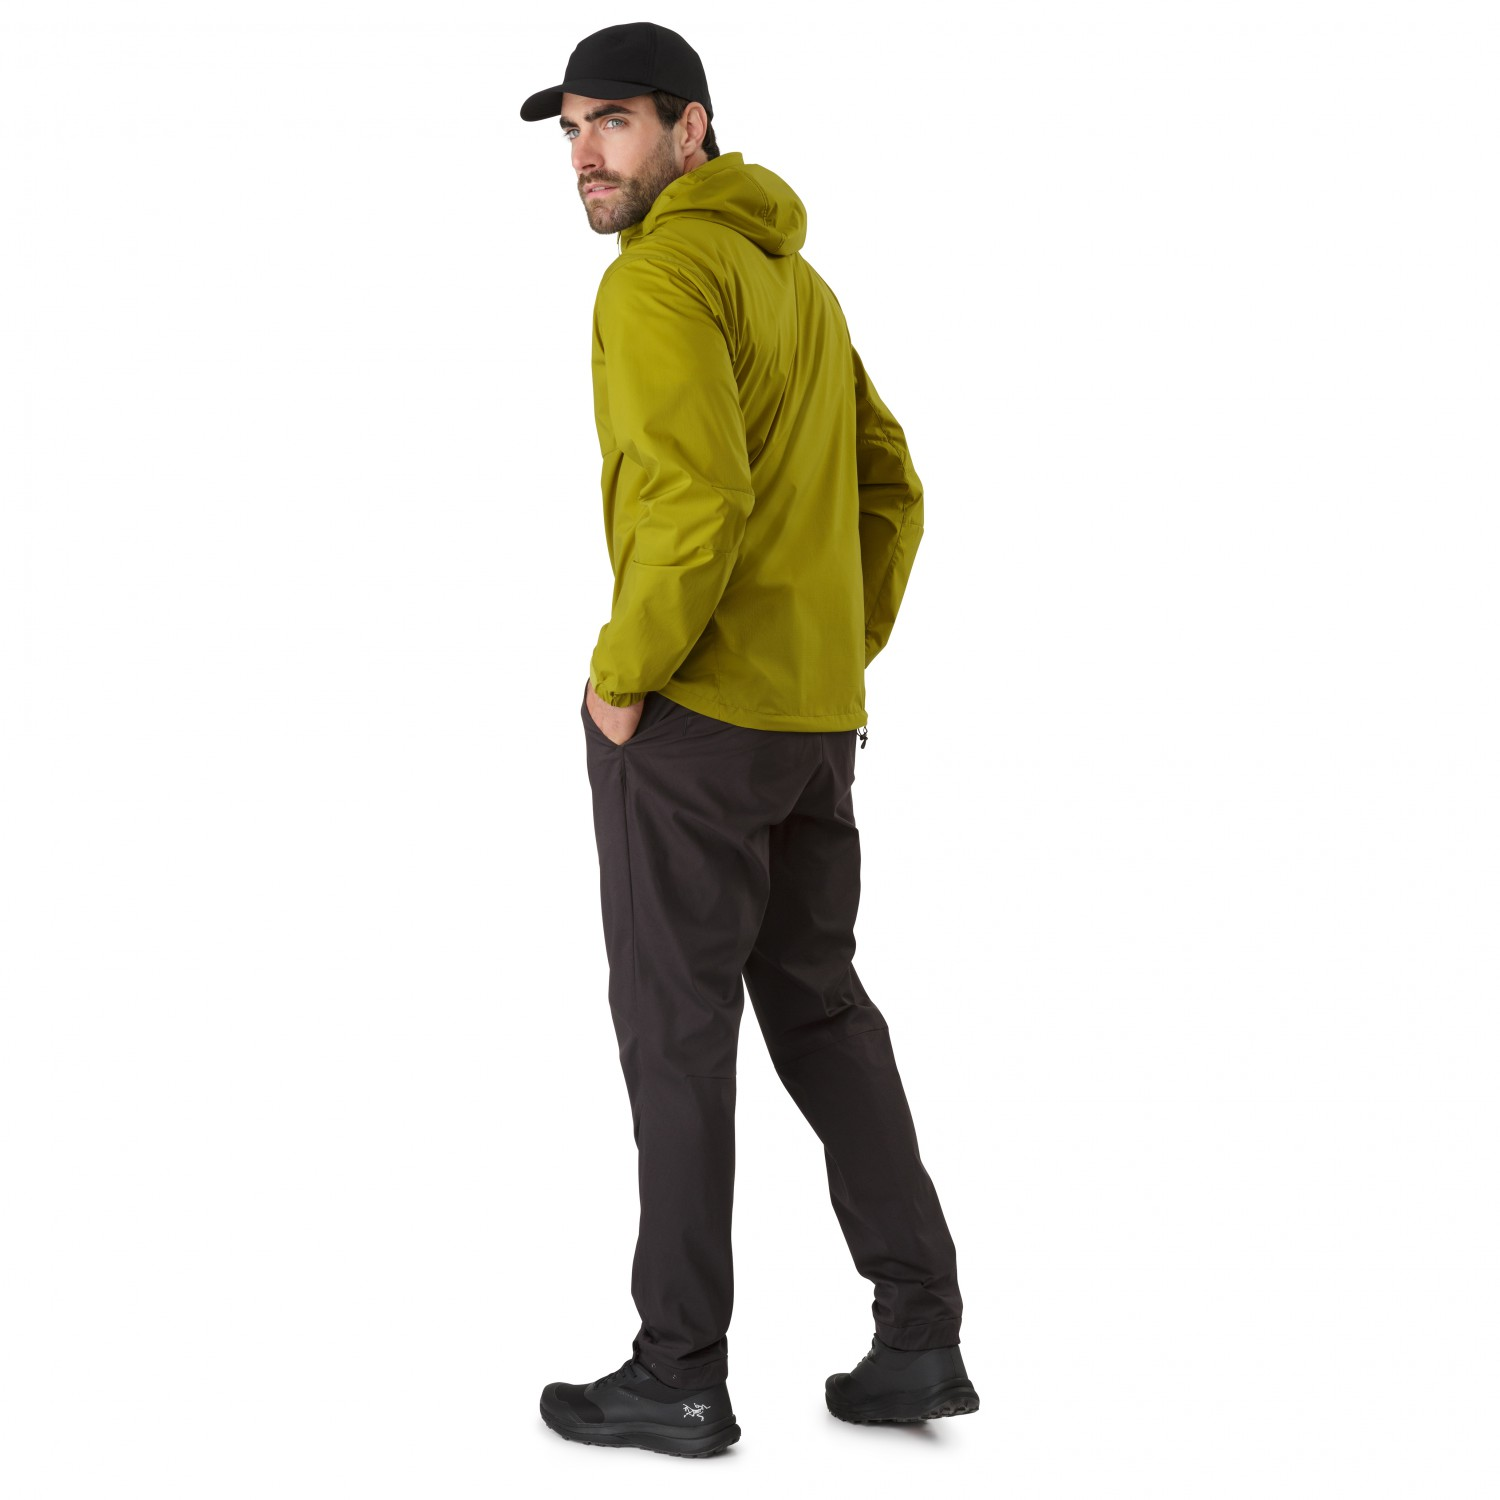 squamish men Squamish hoody - extremely light and compressible, this hooded windshell features ultralight minimalist construction and stows in the chest pocket for maximum packability made with a premium wind resistant fabric that has surprising strength and resilience, this very light layer provides simple.